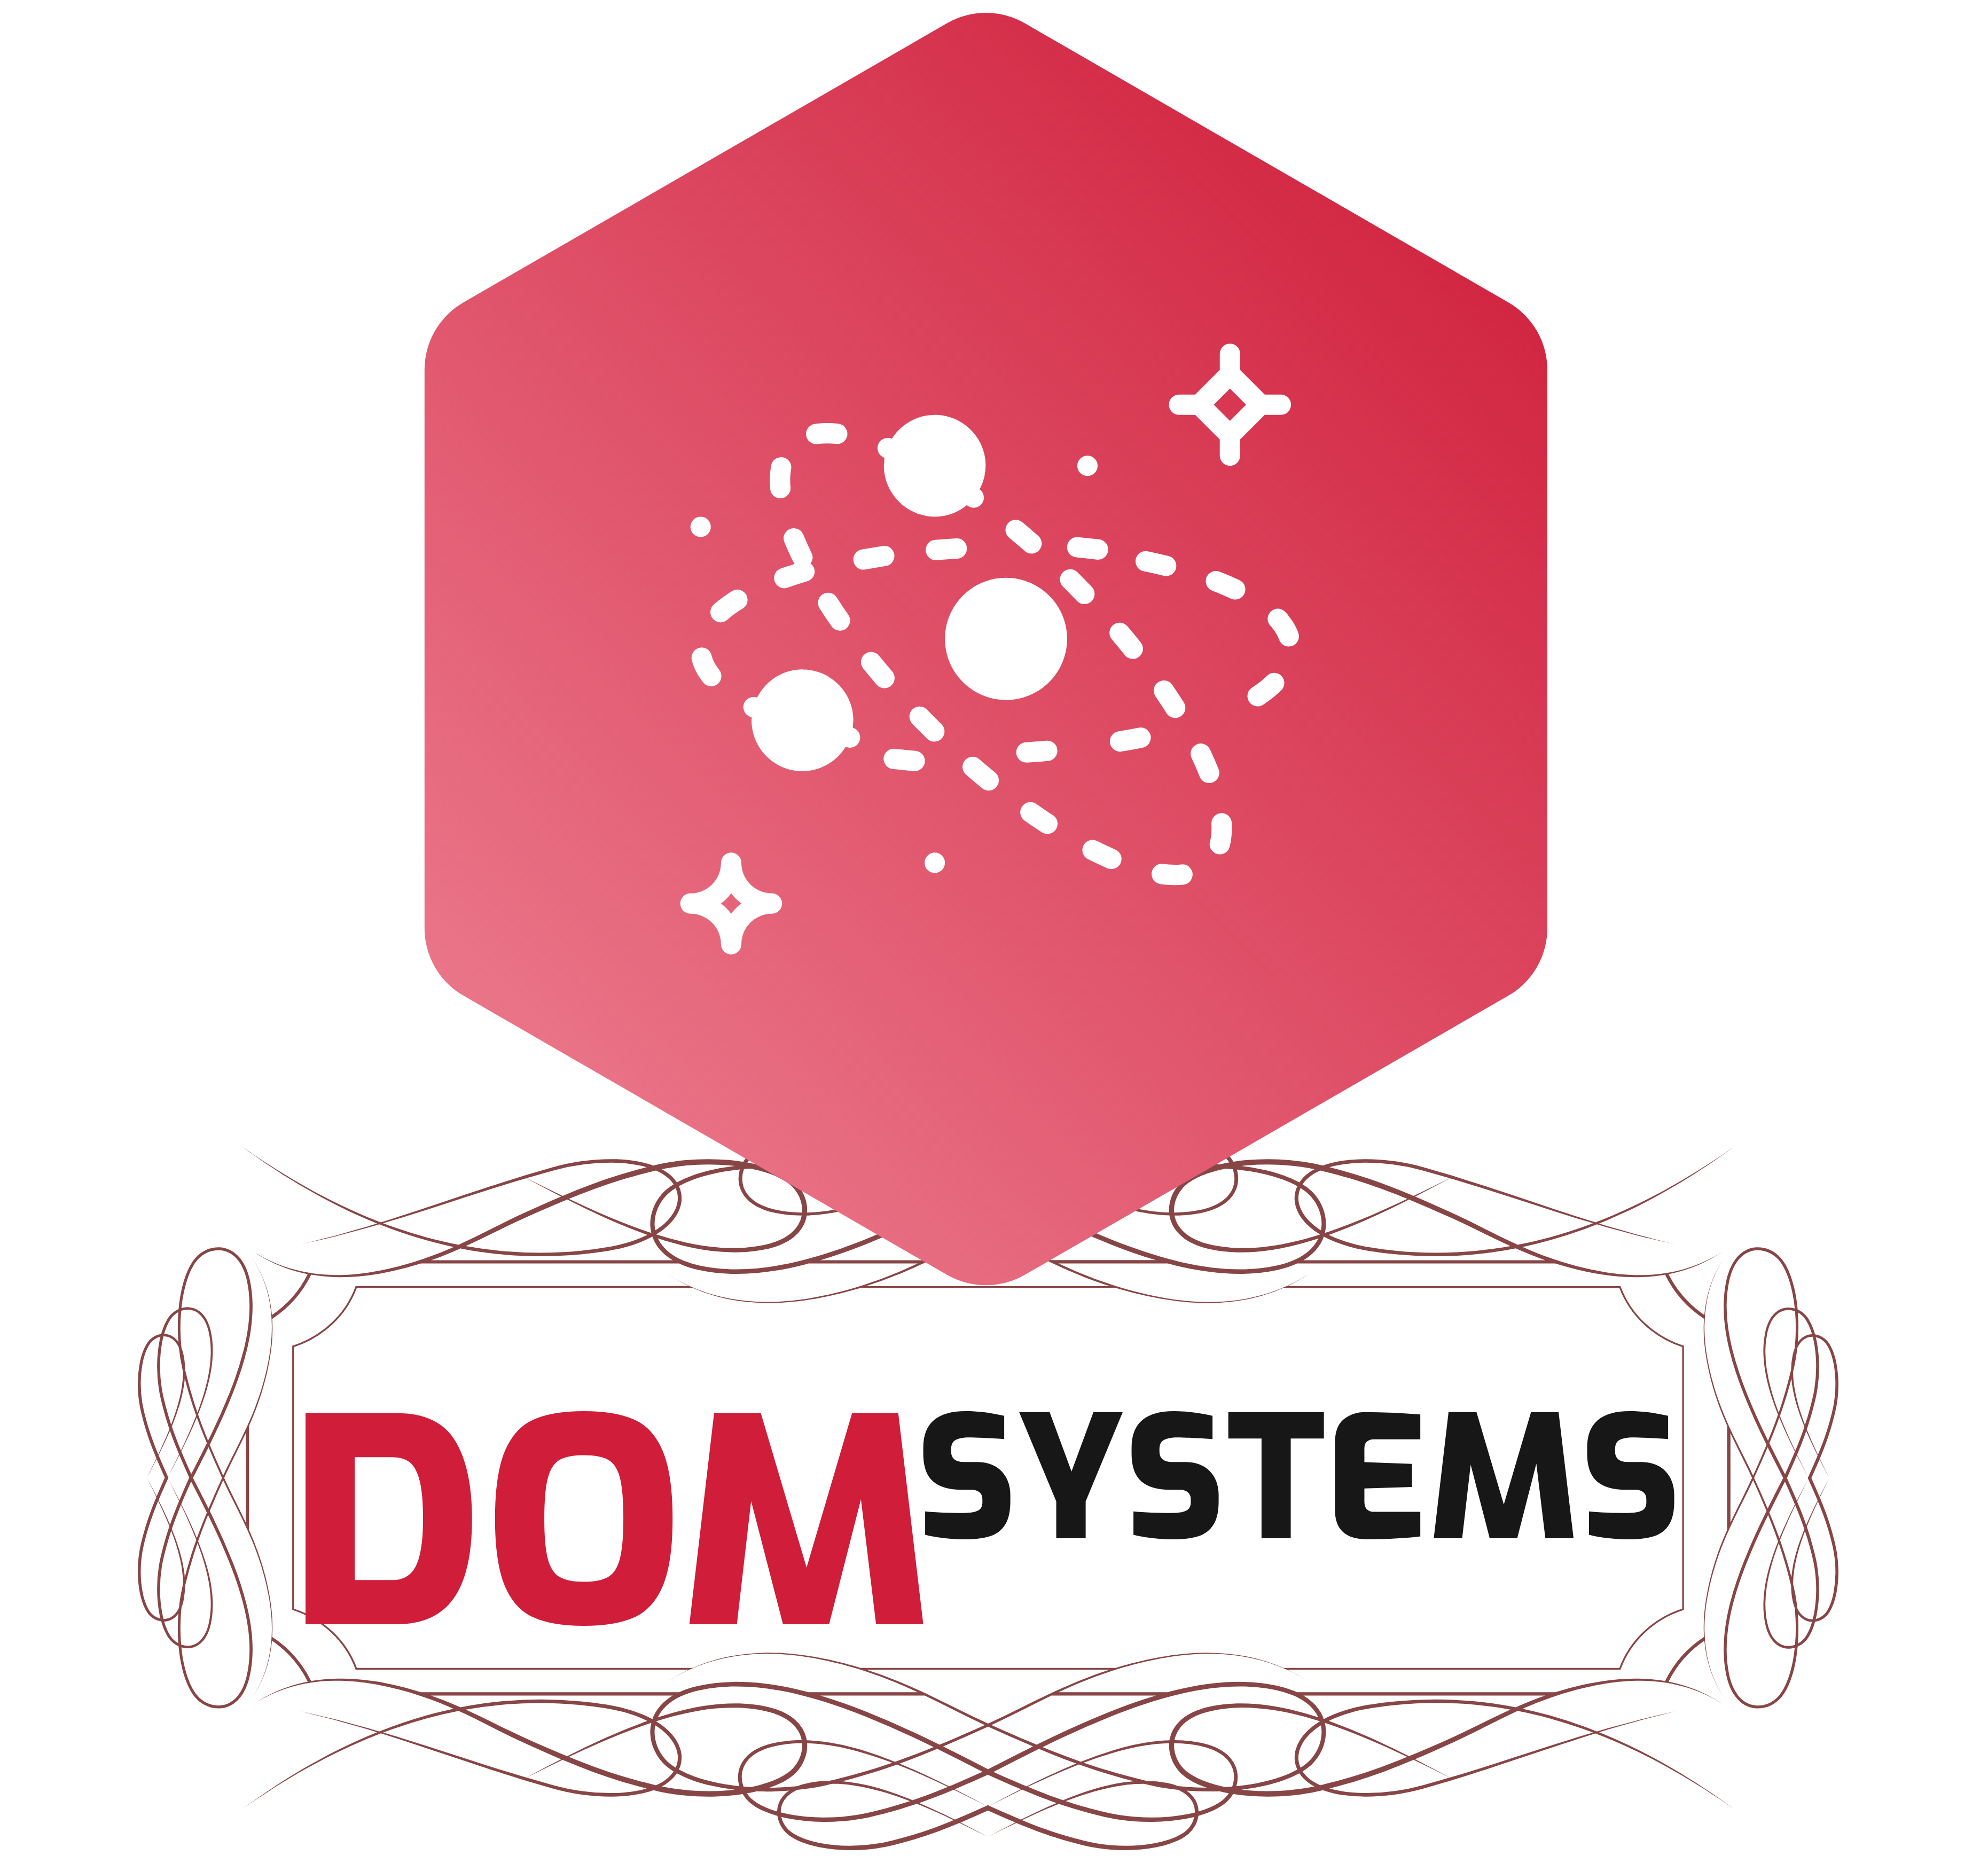 DOM-SYSTEMS